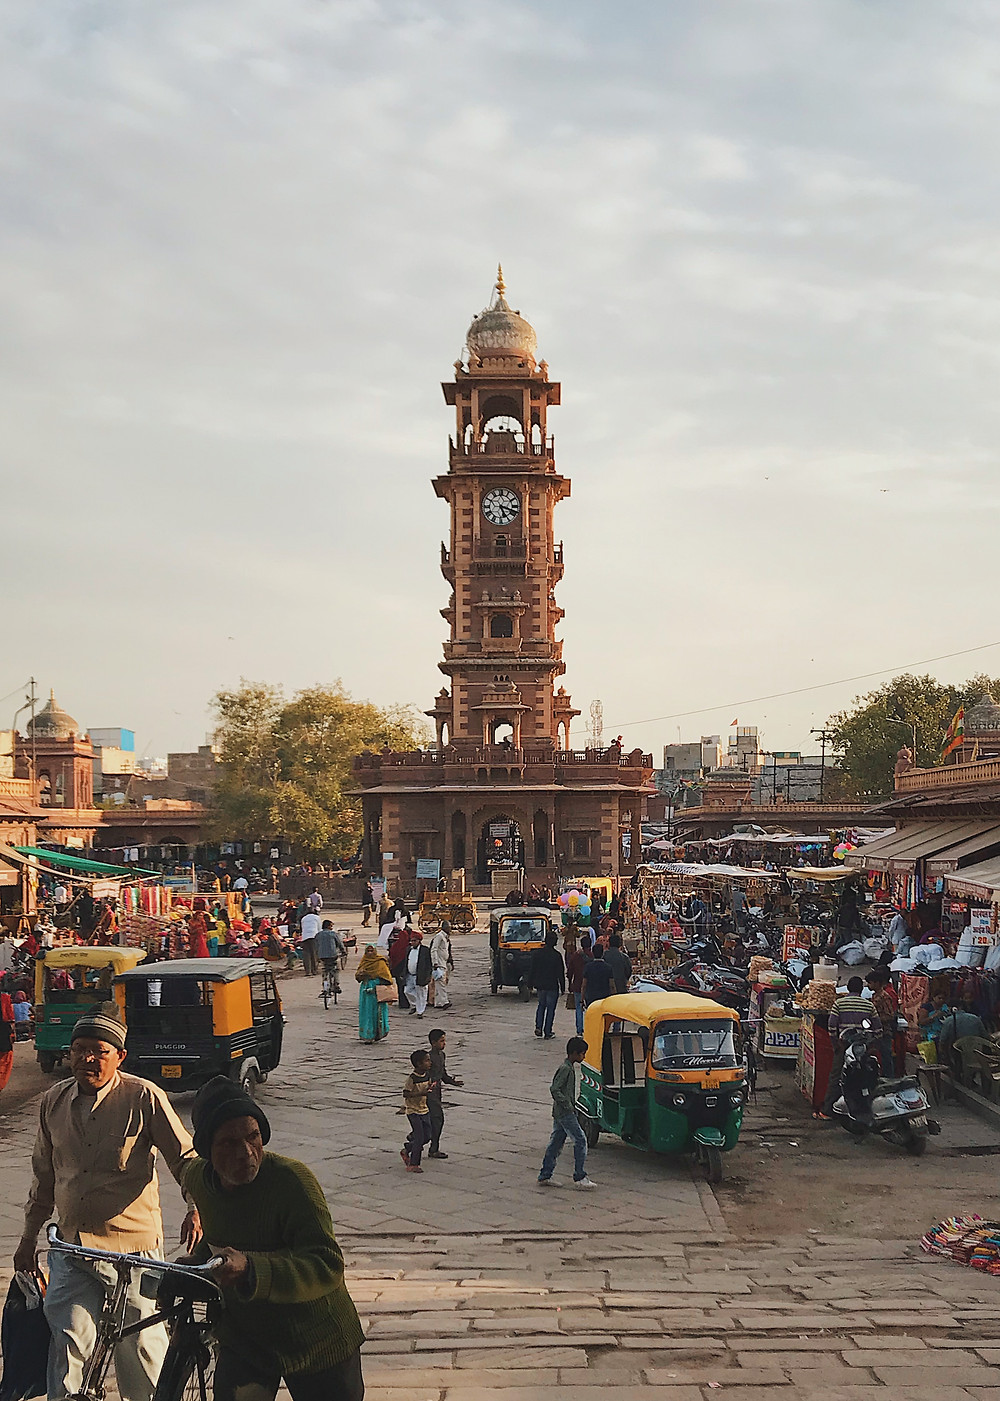 Clock Tower in the middle of Sardar Market, in Jodhpur, Rajasthan, India